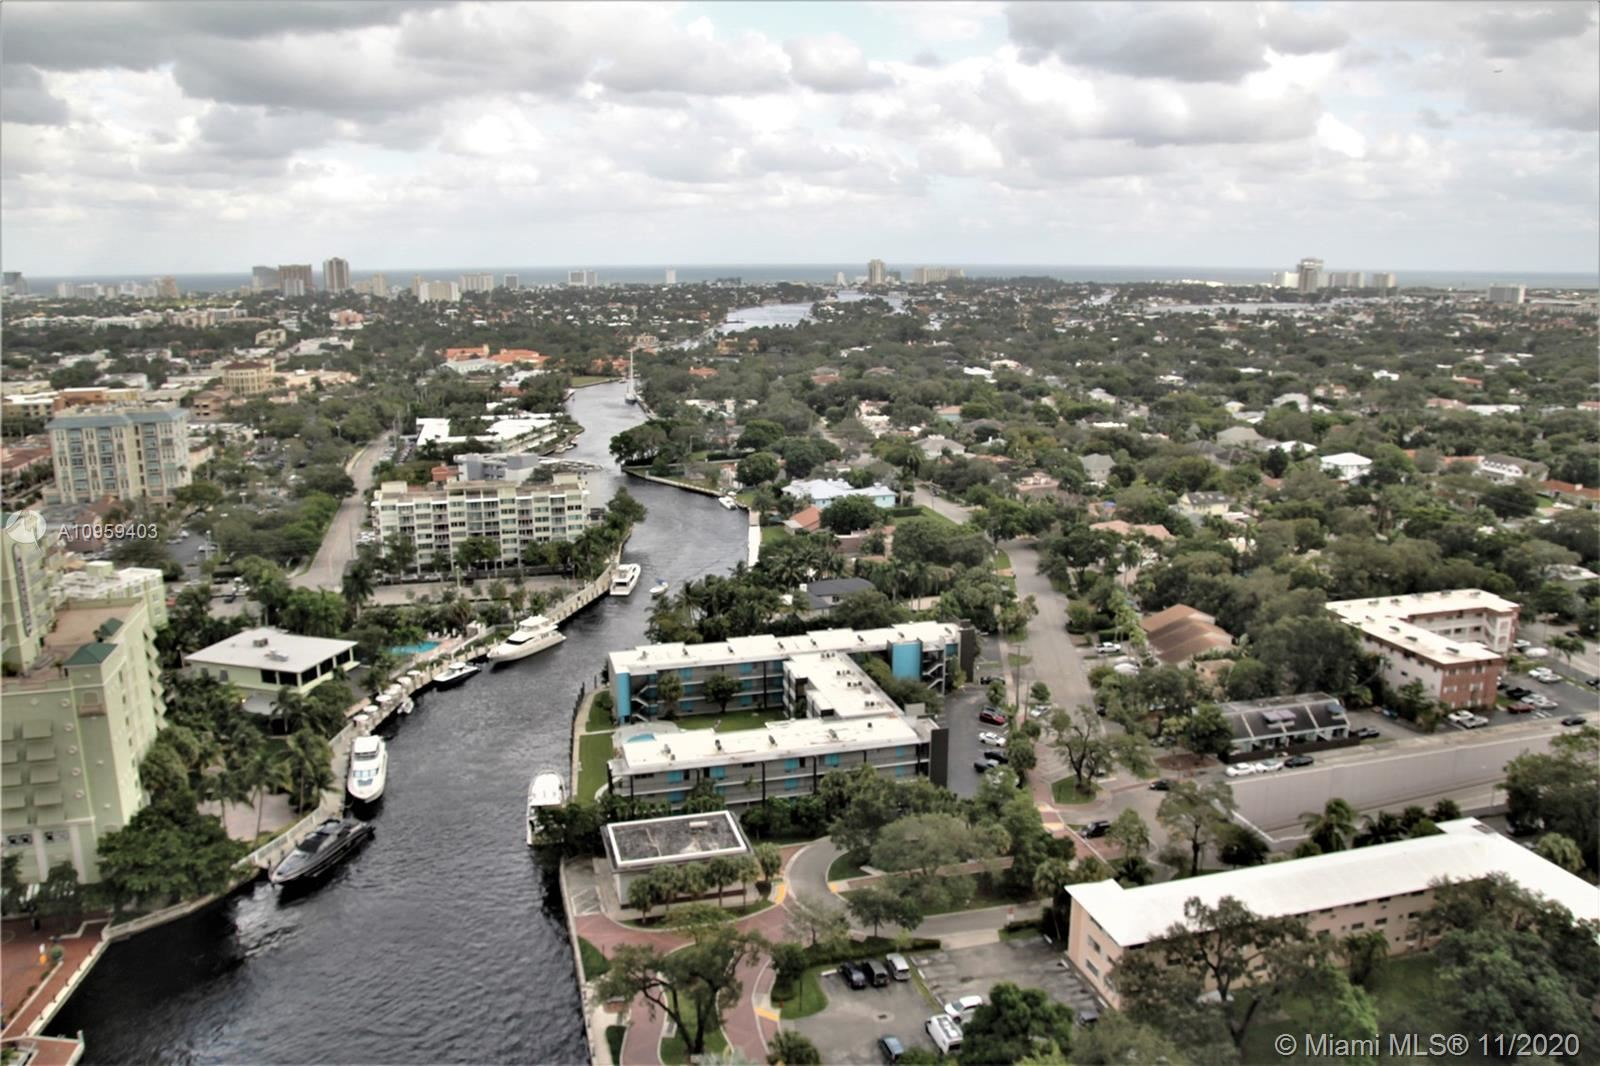 Photo of 411 N New River Dr E #2805, Fort Lauderdale, FL 33301 (MLS # A10959403)